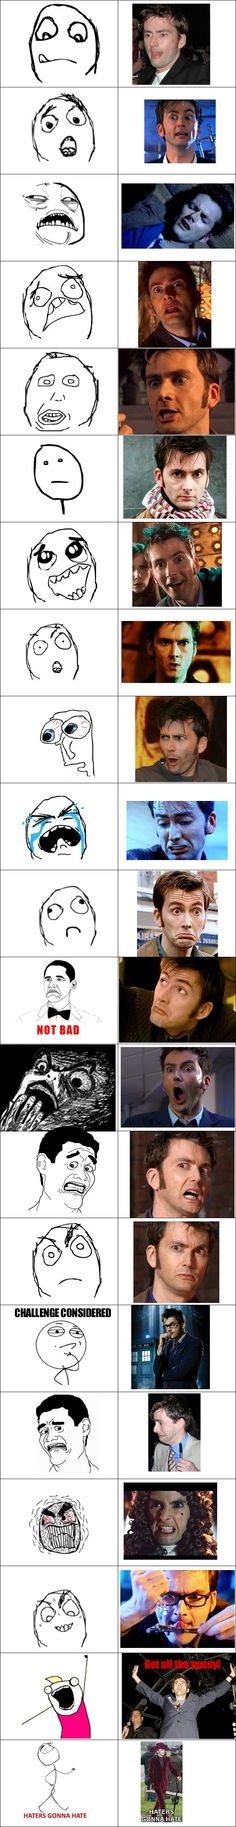 All those memes should be replaced with David Tennant faces from now on!